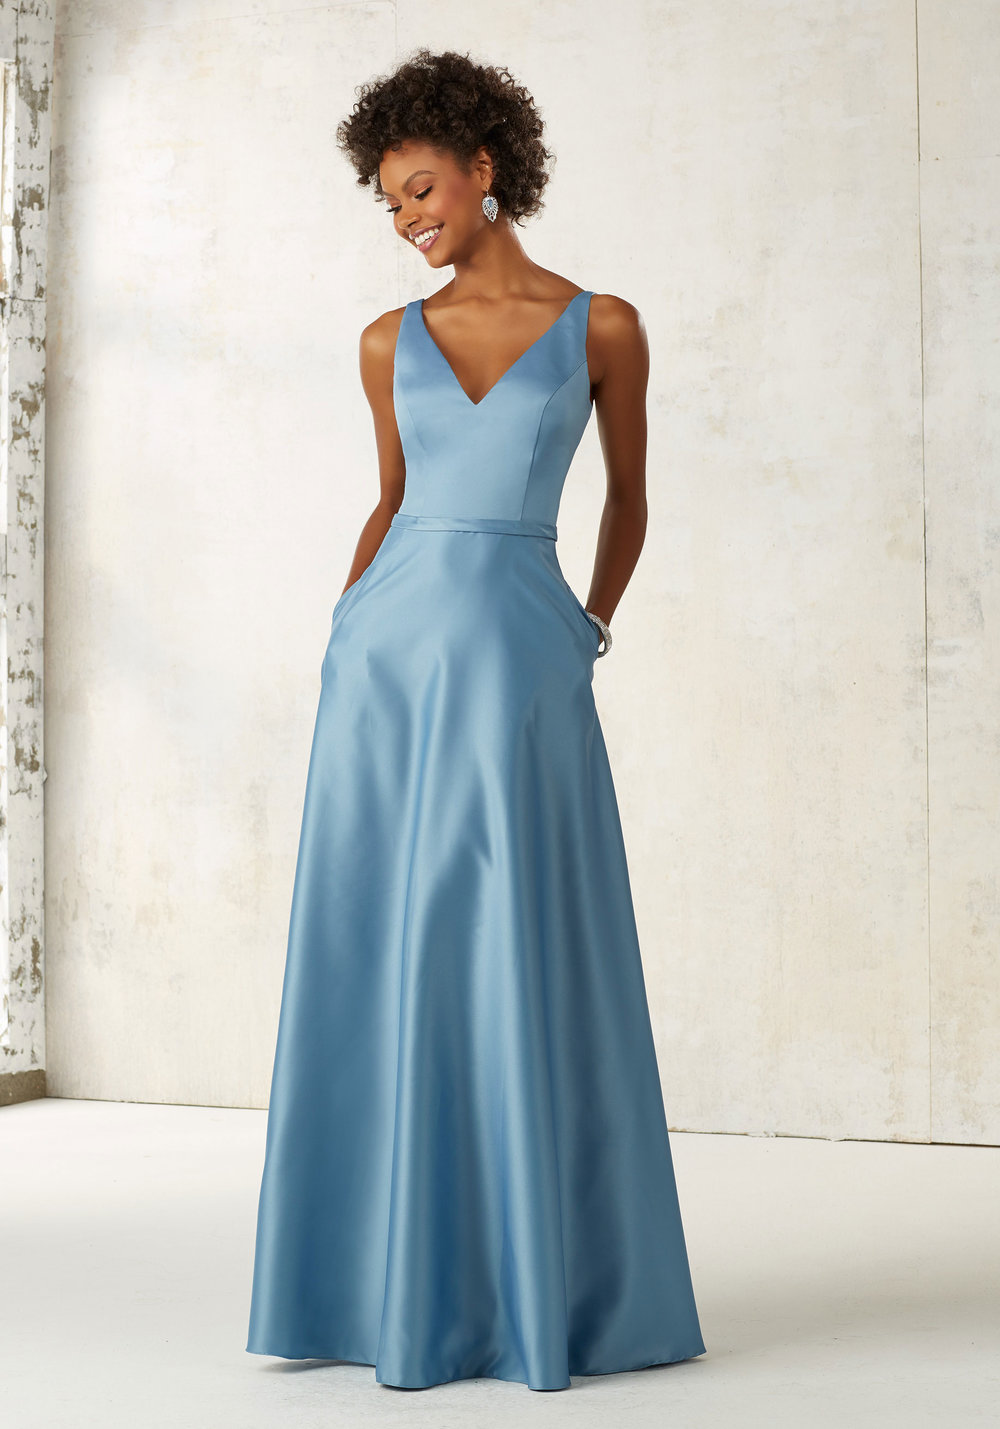 Satin V-Neck Bridesmaids Dress with pockets